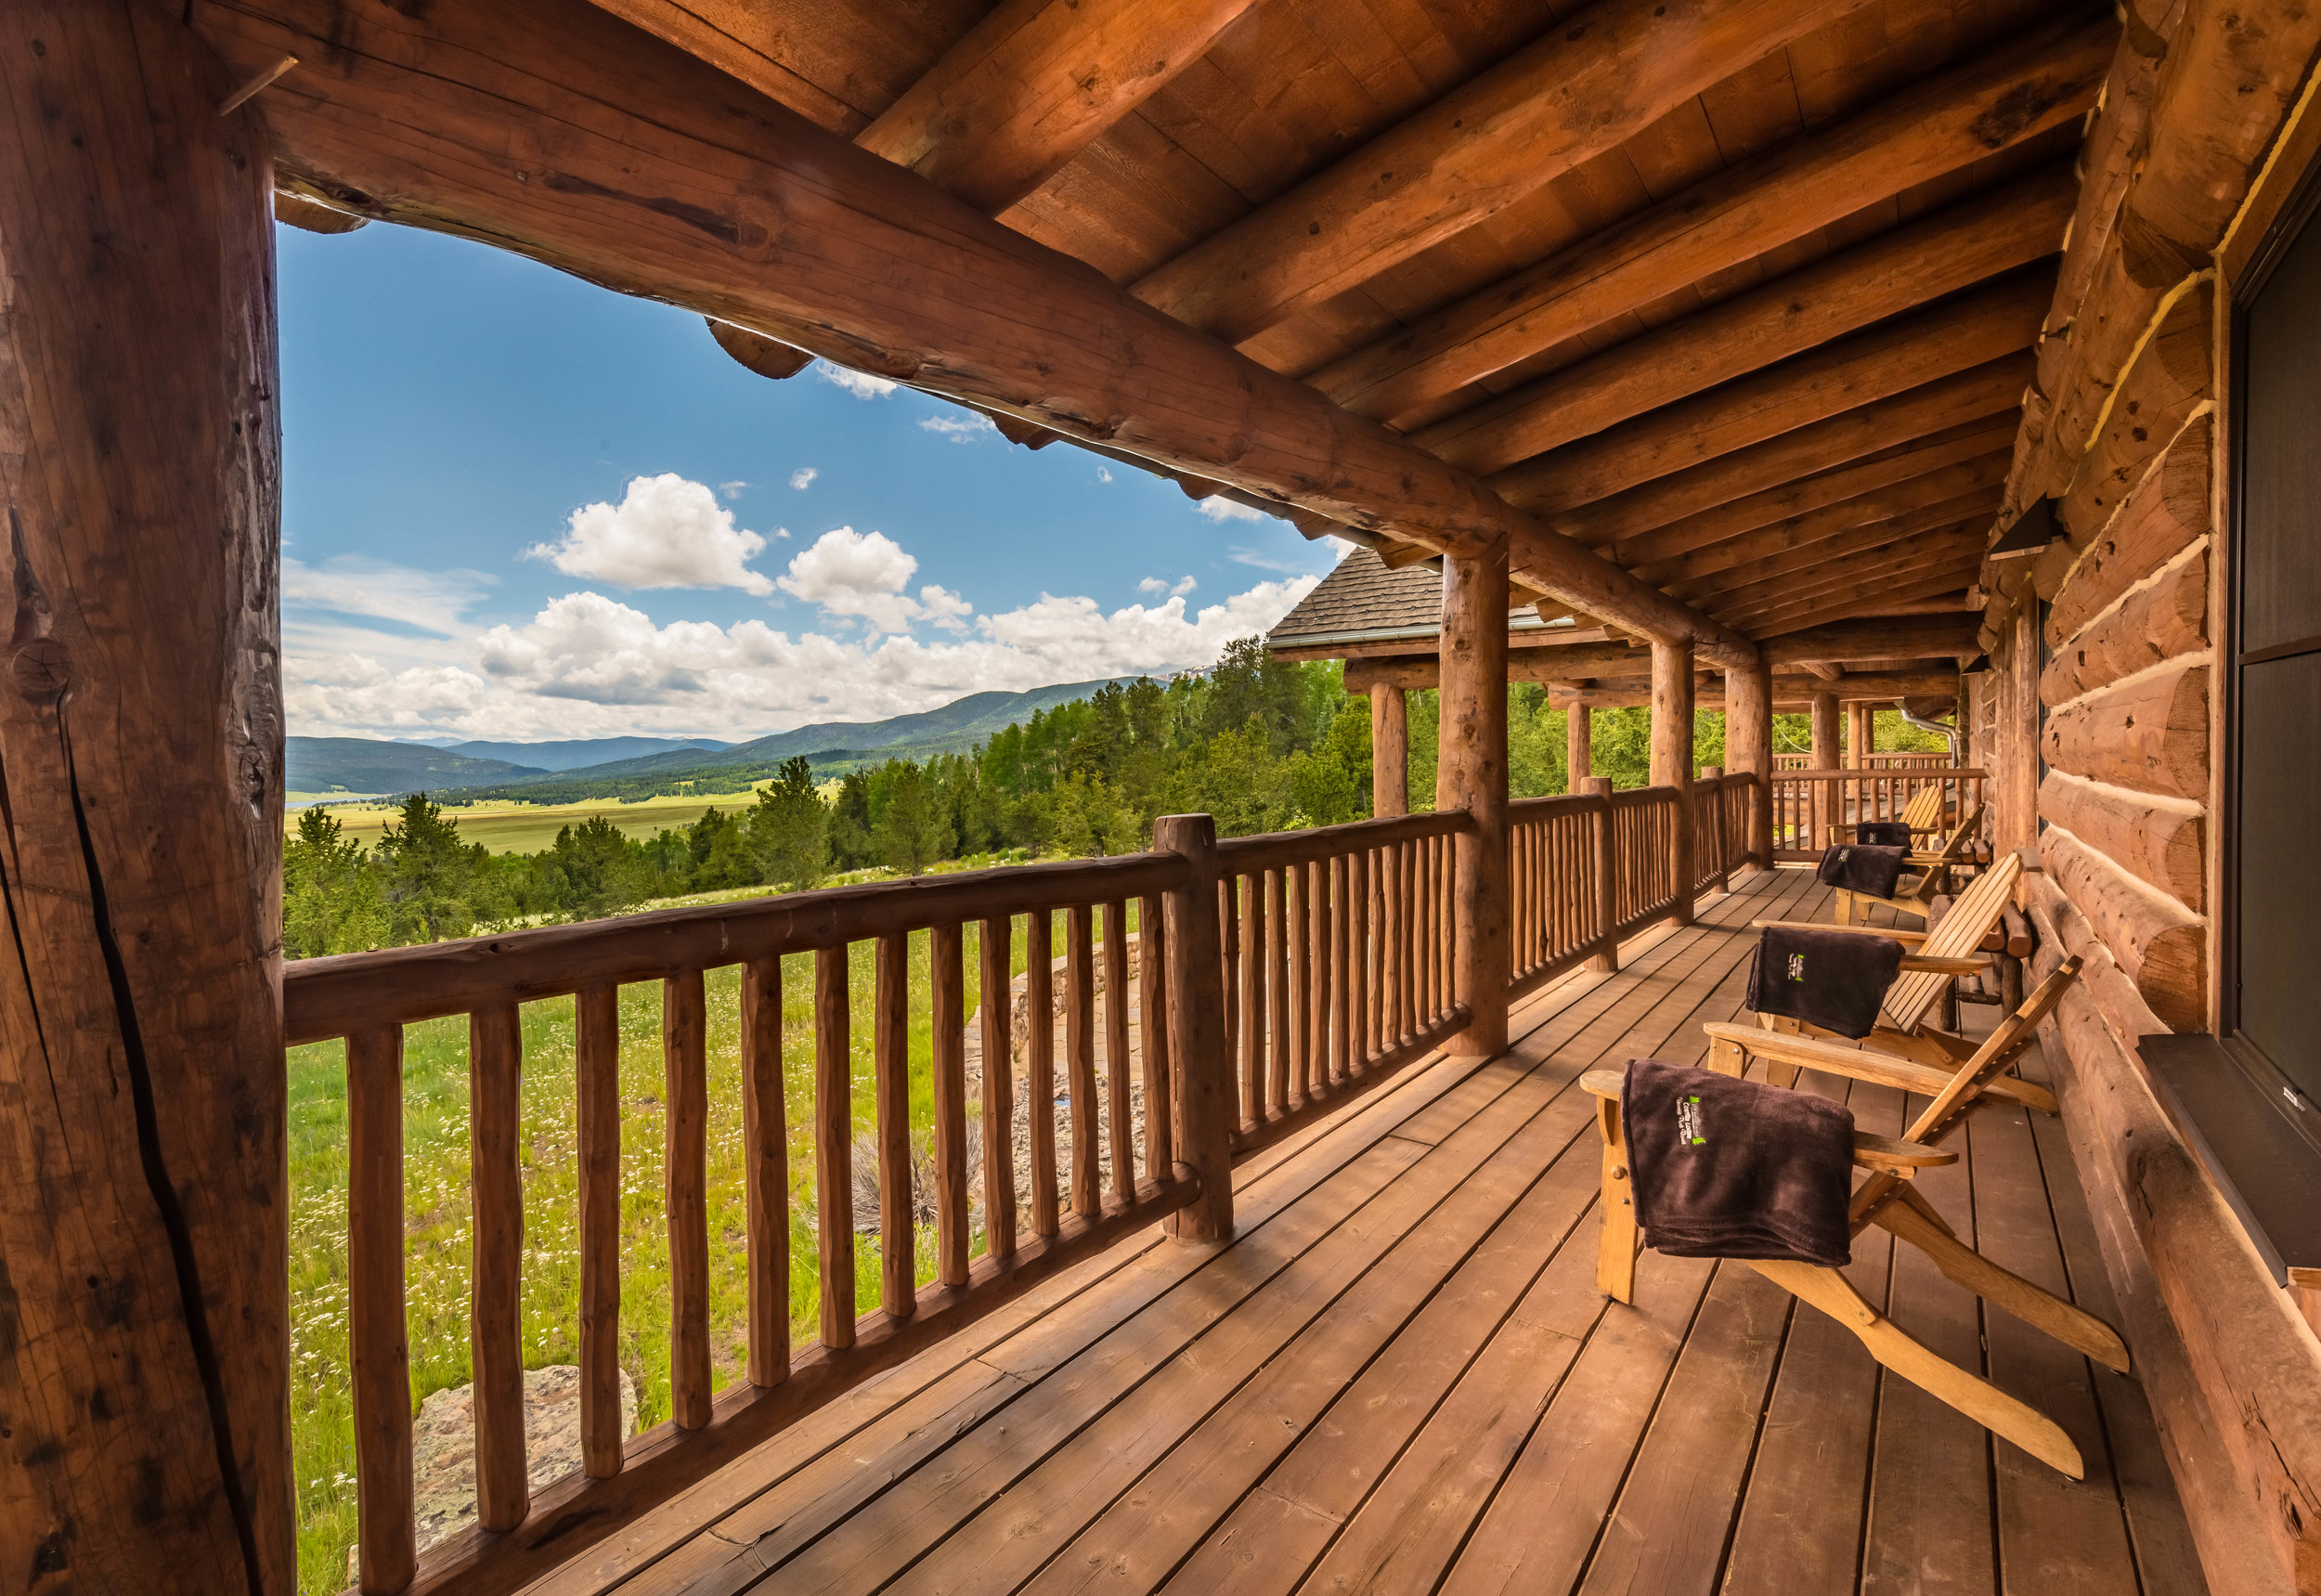 Costilla Lodge Porch Views